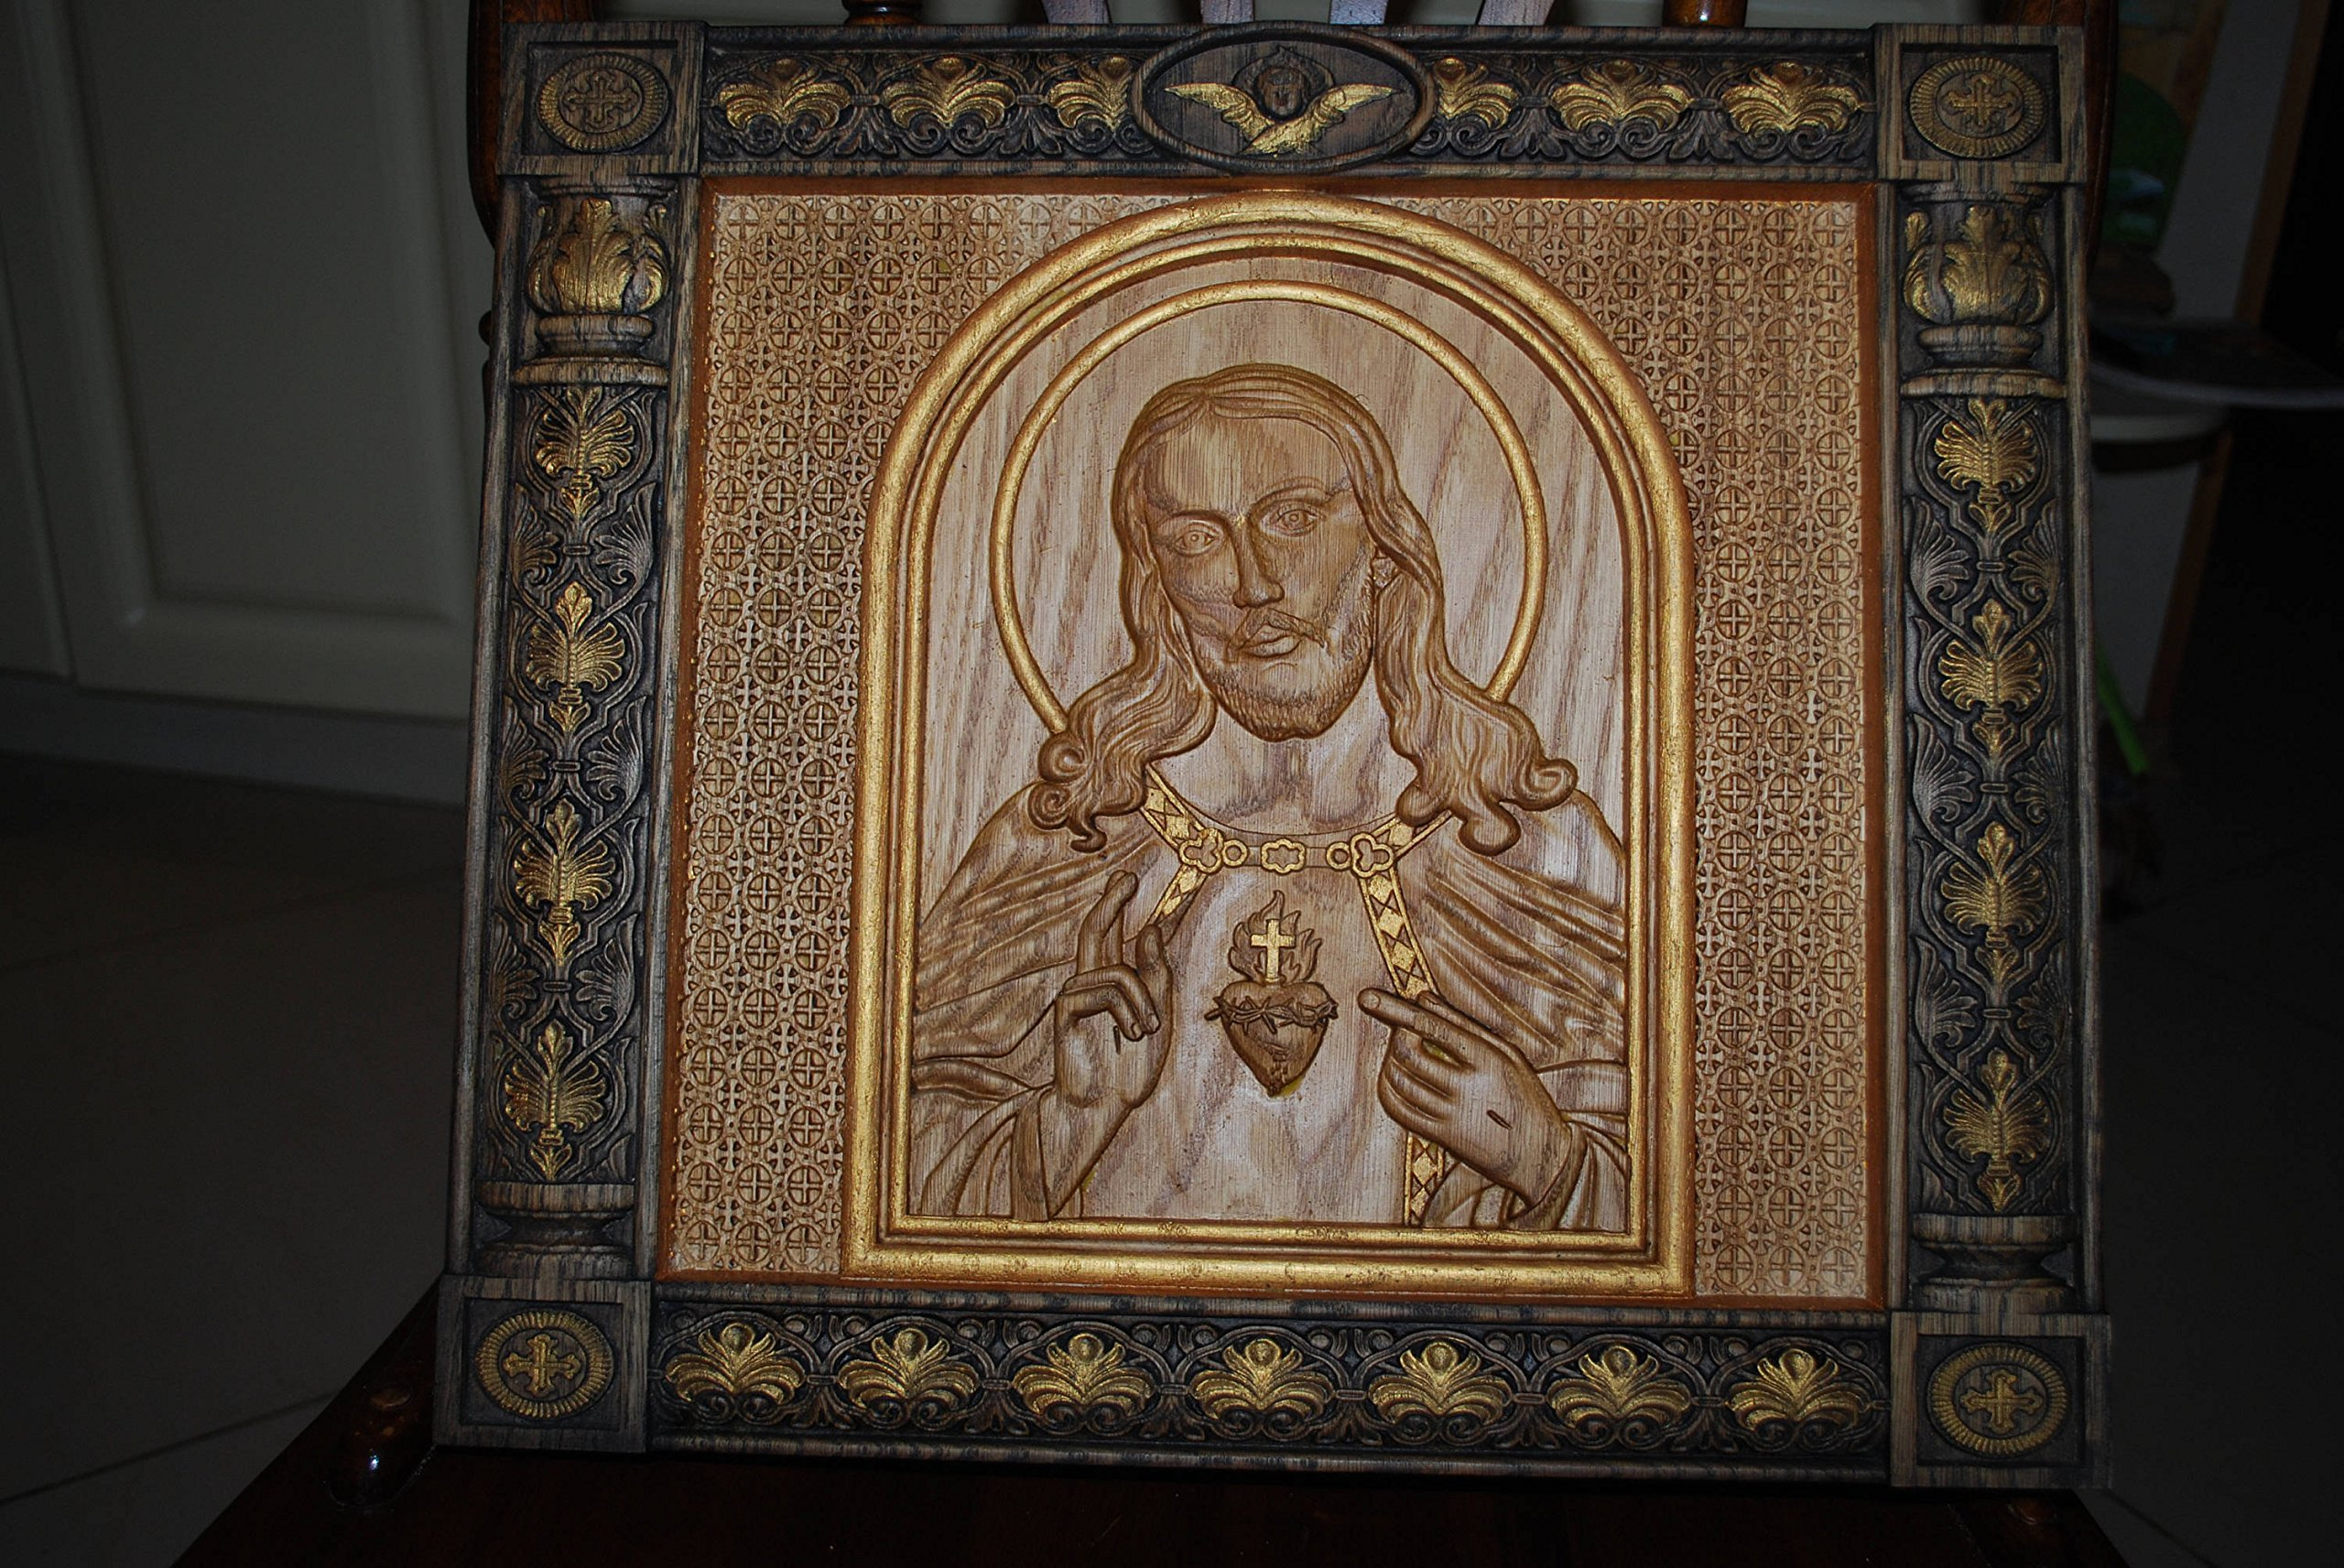 Sacred Heart of Jesus Catholic Icon Religious wedding anniversary gift for woman gift Wood Carved religious wall plaque FREE ENGRAVING FREE SHIPPING